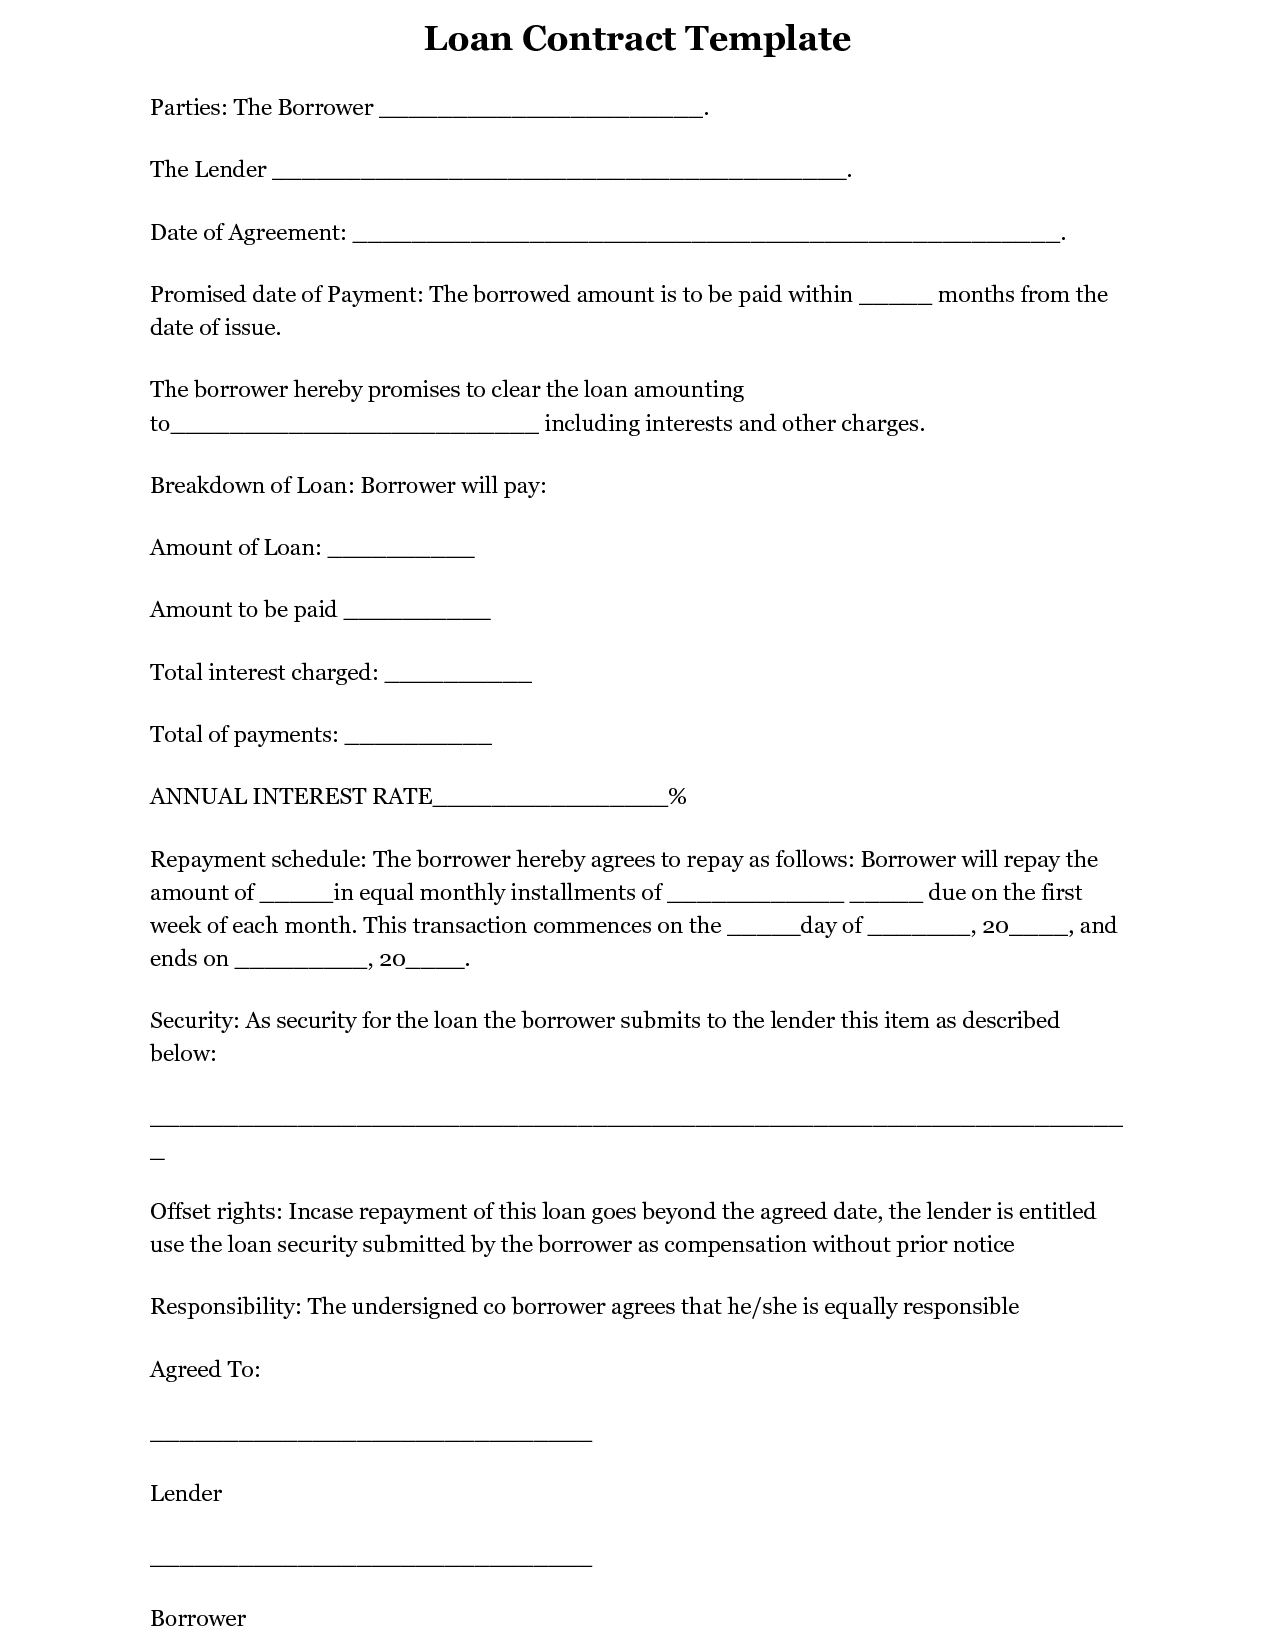 Simple Loan Agreement Form Free Loan Contract Template 26 Examples In Word  Pdf Free, Commercial Loan Agreement Template Loan Agreement Form Template,  ... In Free Loan Template